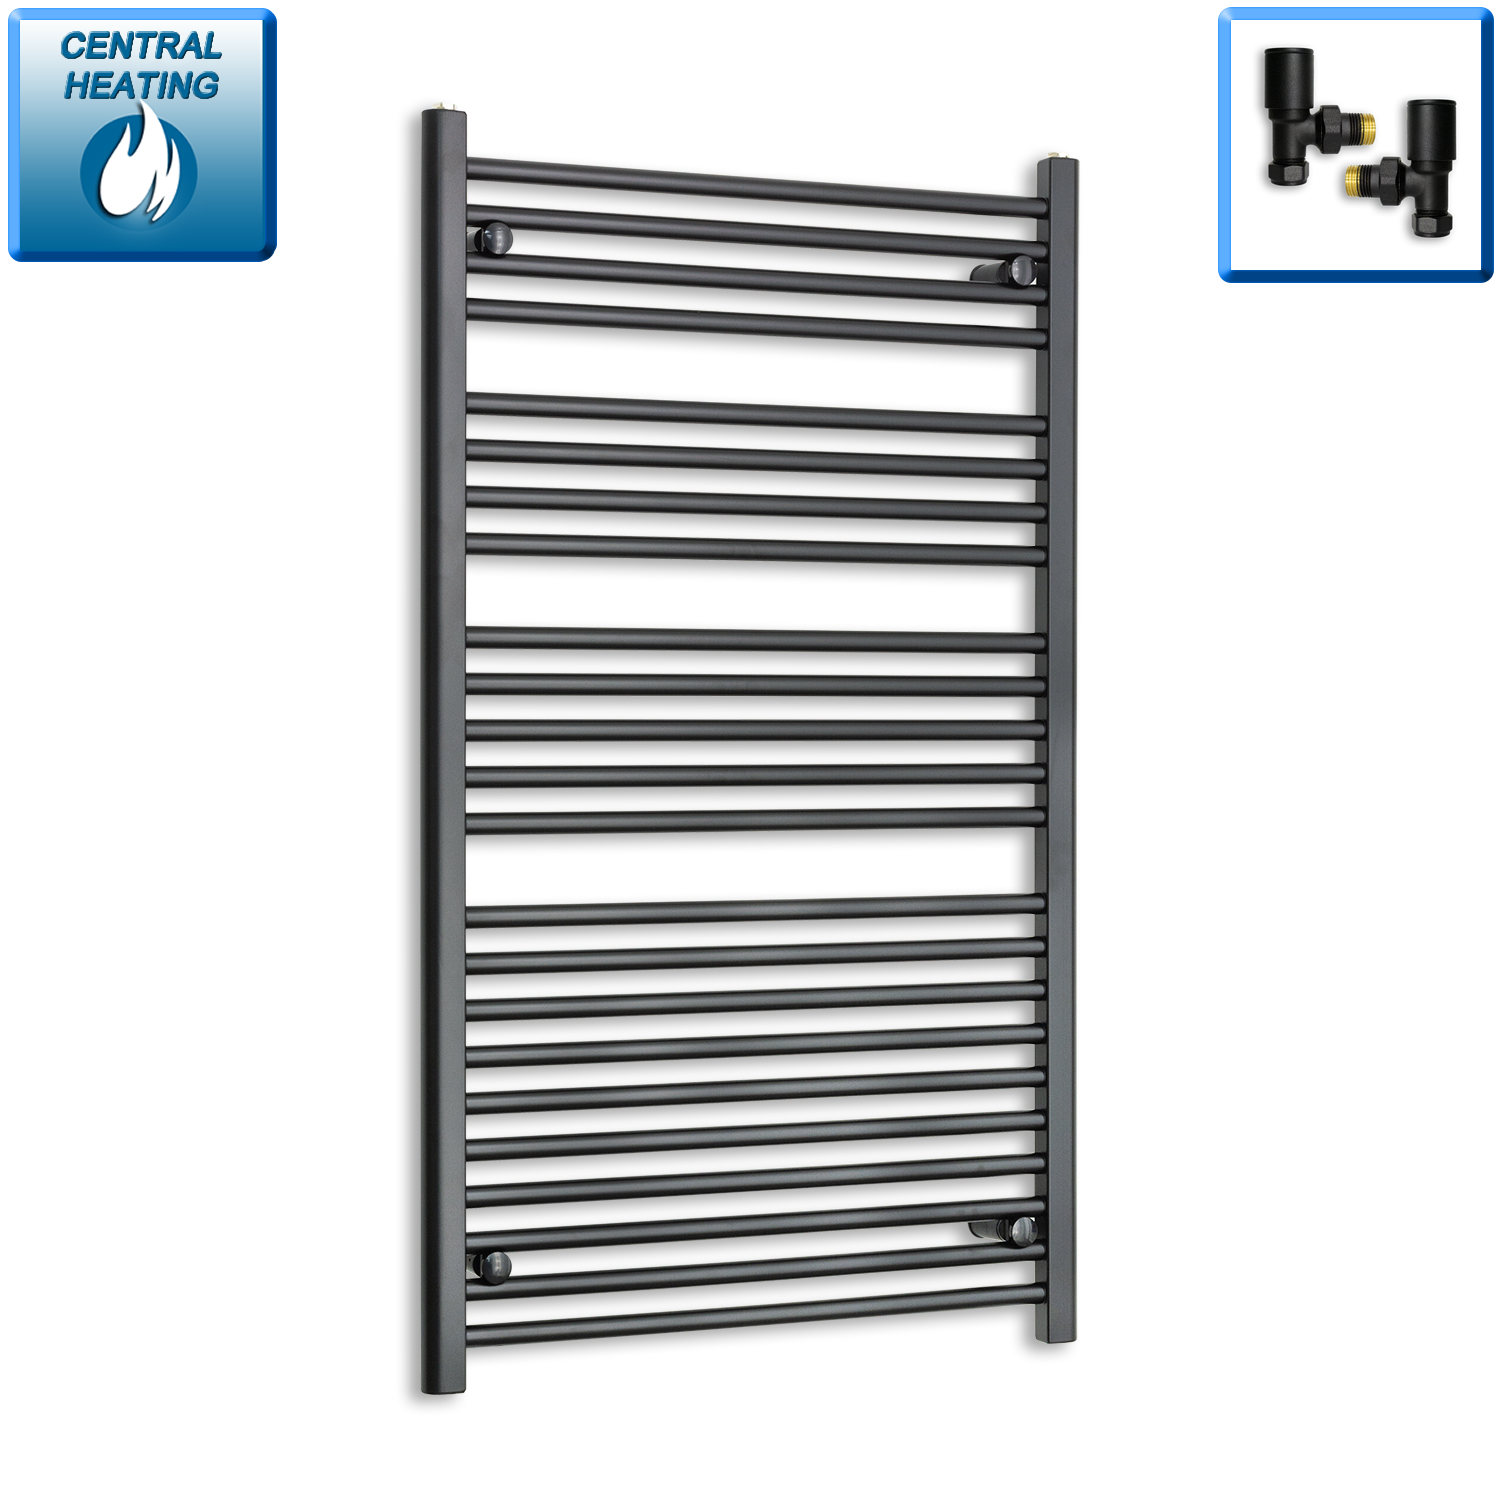 700mm Wide 1200mm High Black Towel Rail Radiator With Angled Valve